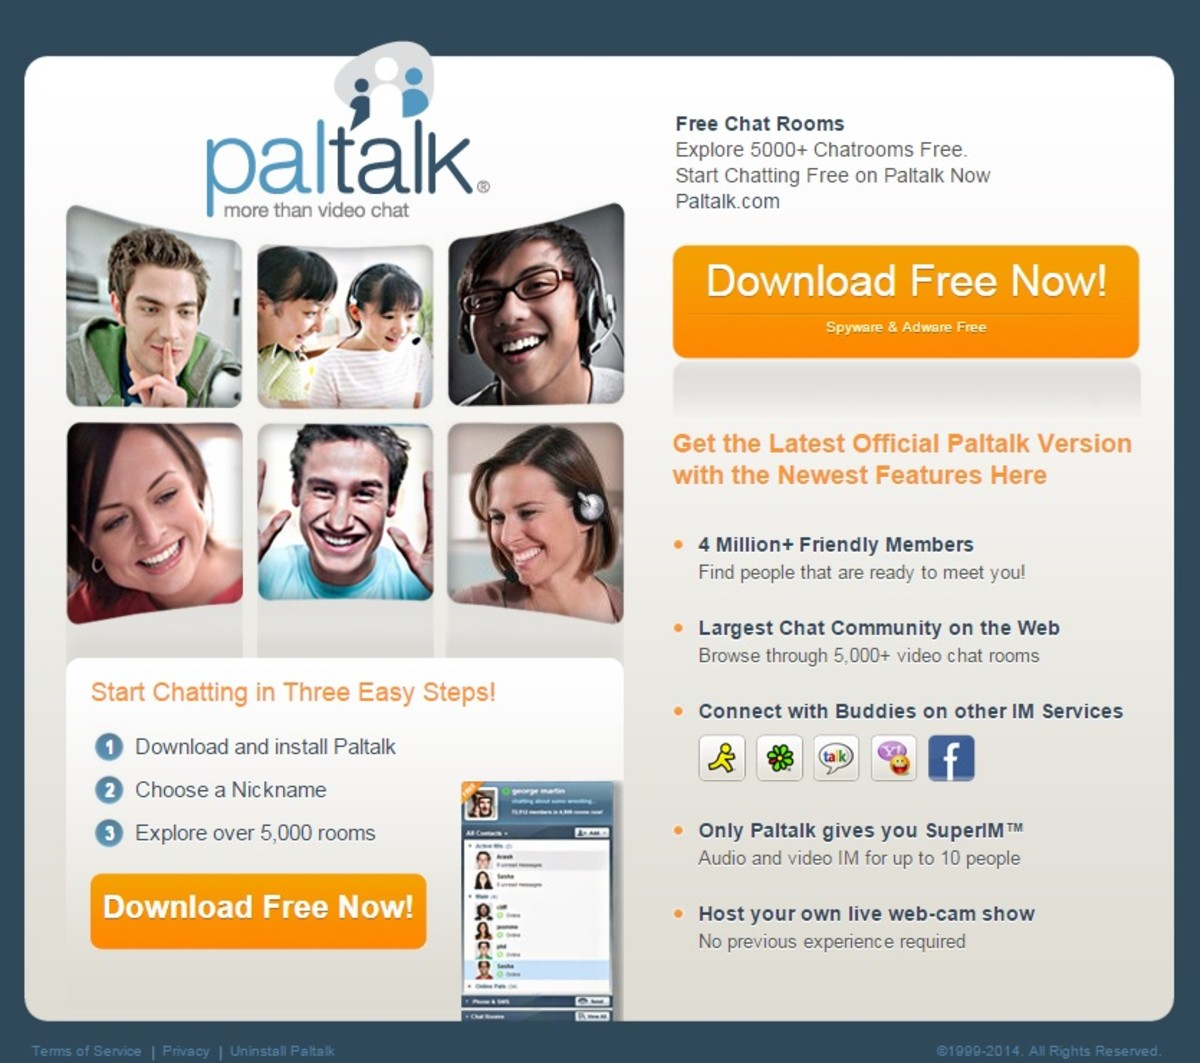 paltalk-website